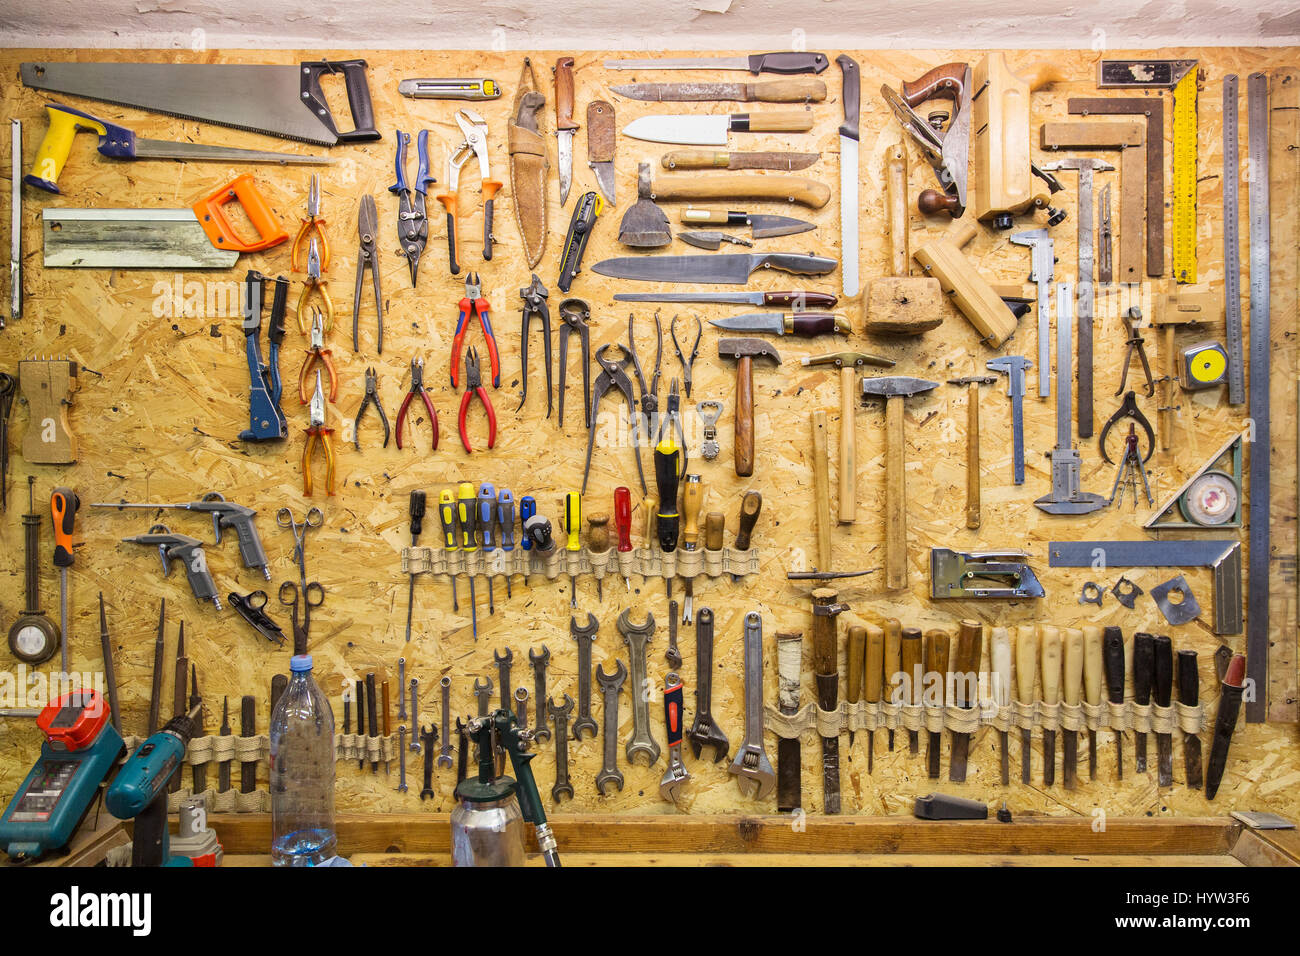 work tools hanging on wall at workshop stock photo. Black Bedroom Furniture Sets. Home Design Ideas